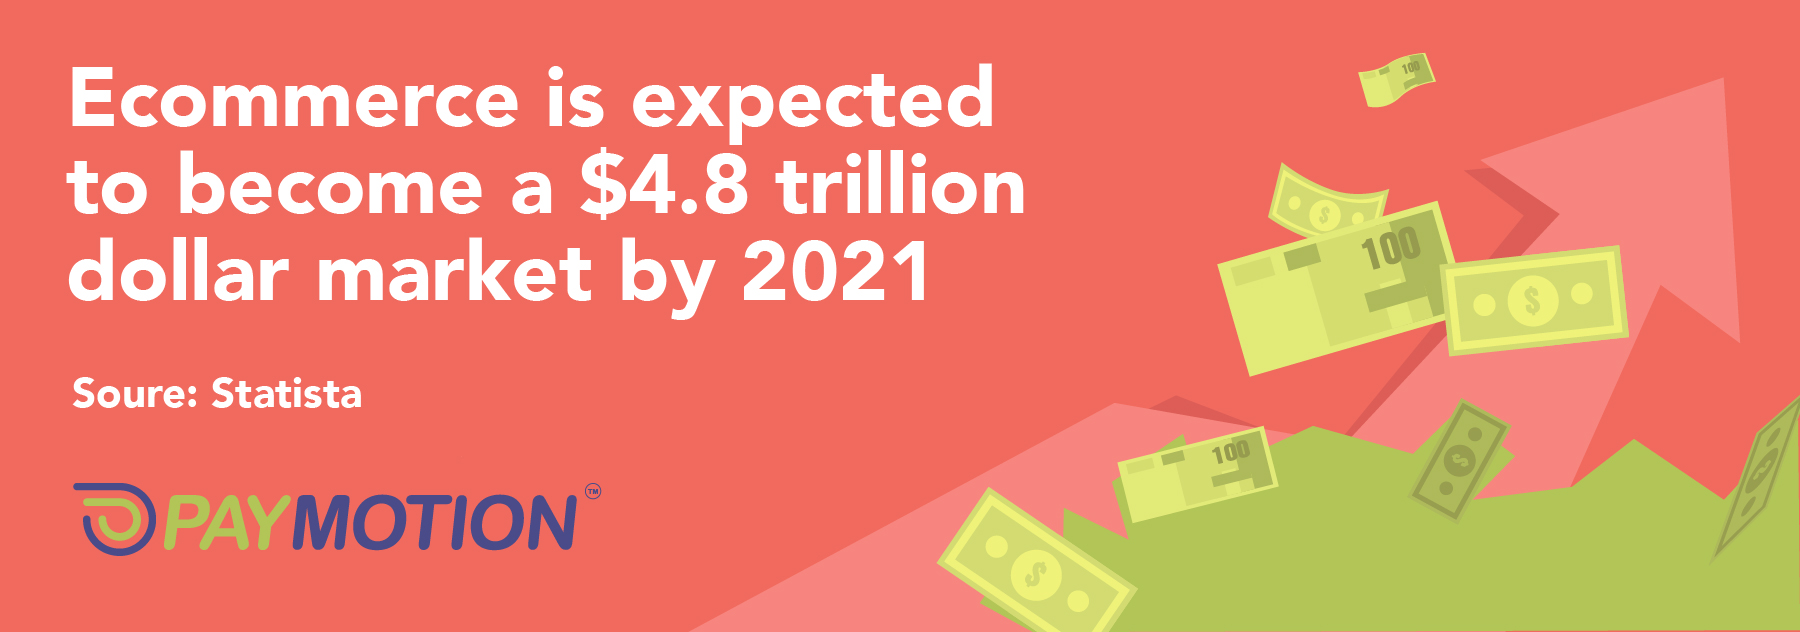 Global Growth. Ecommerce is expected to become a $4.8 trillion dollar market by 2021.